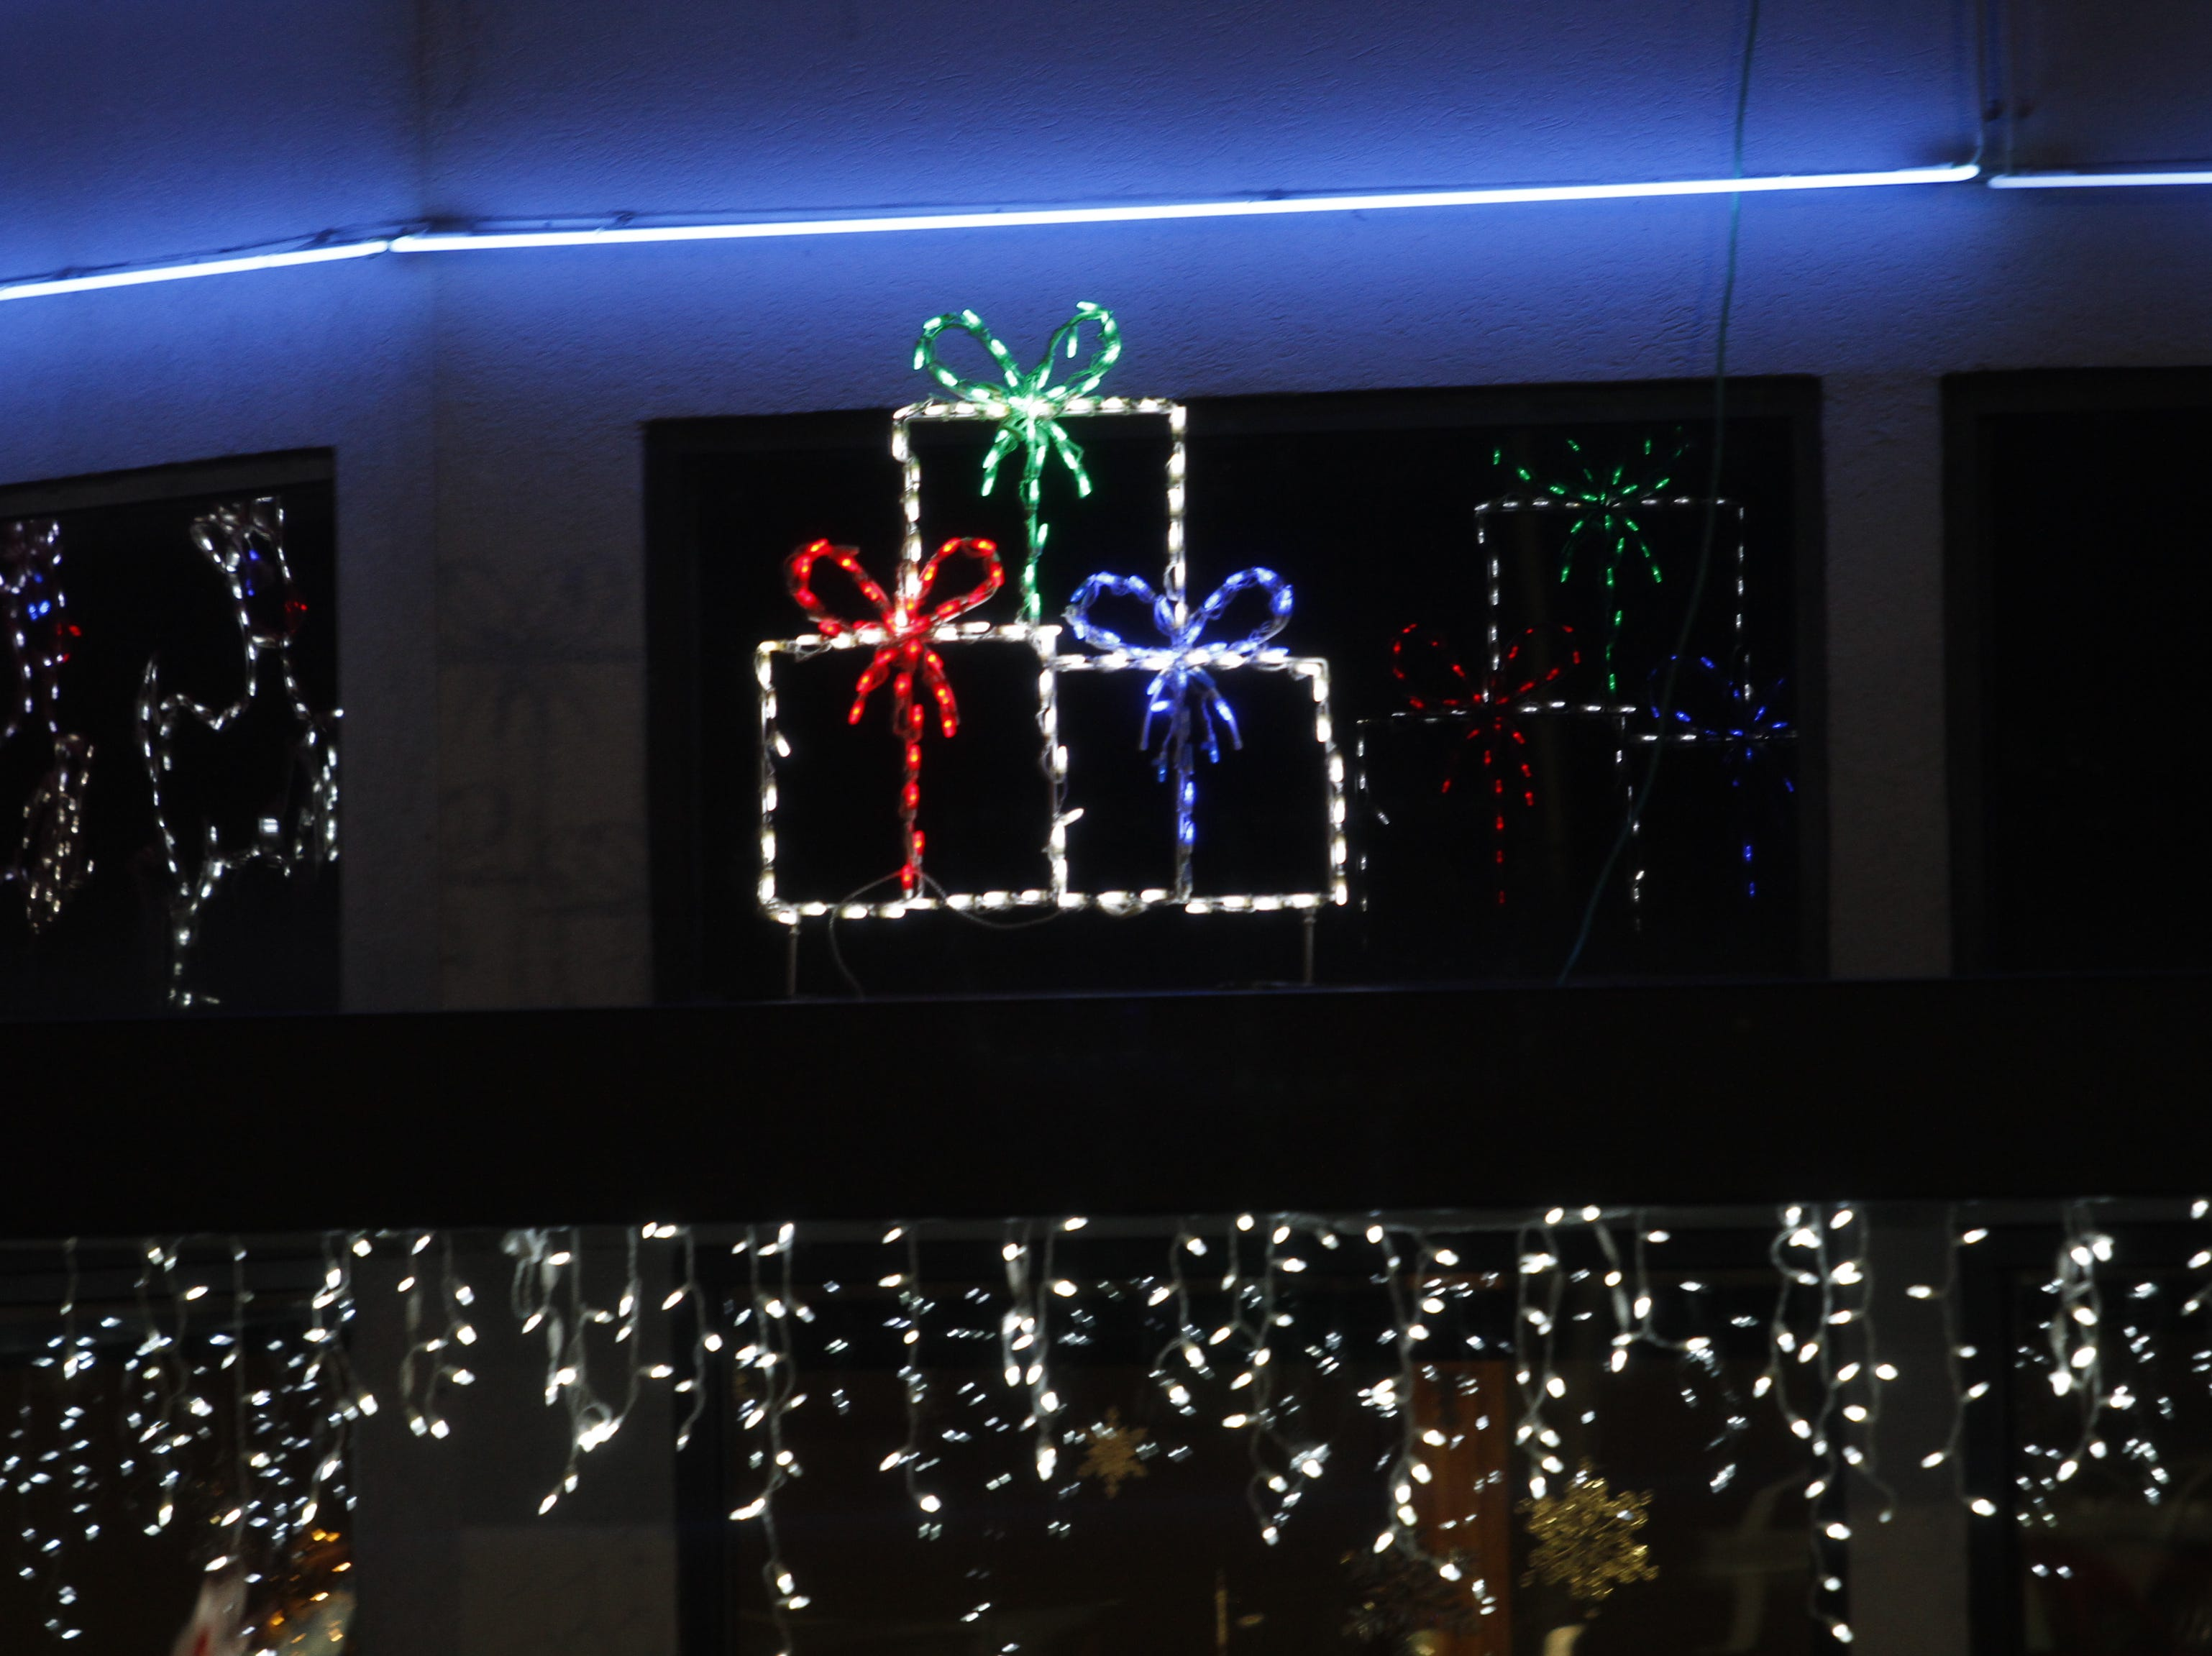 Action Air was the commercial winner in the 2018 Christmas Lighting Contest.